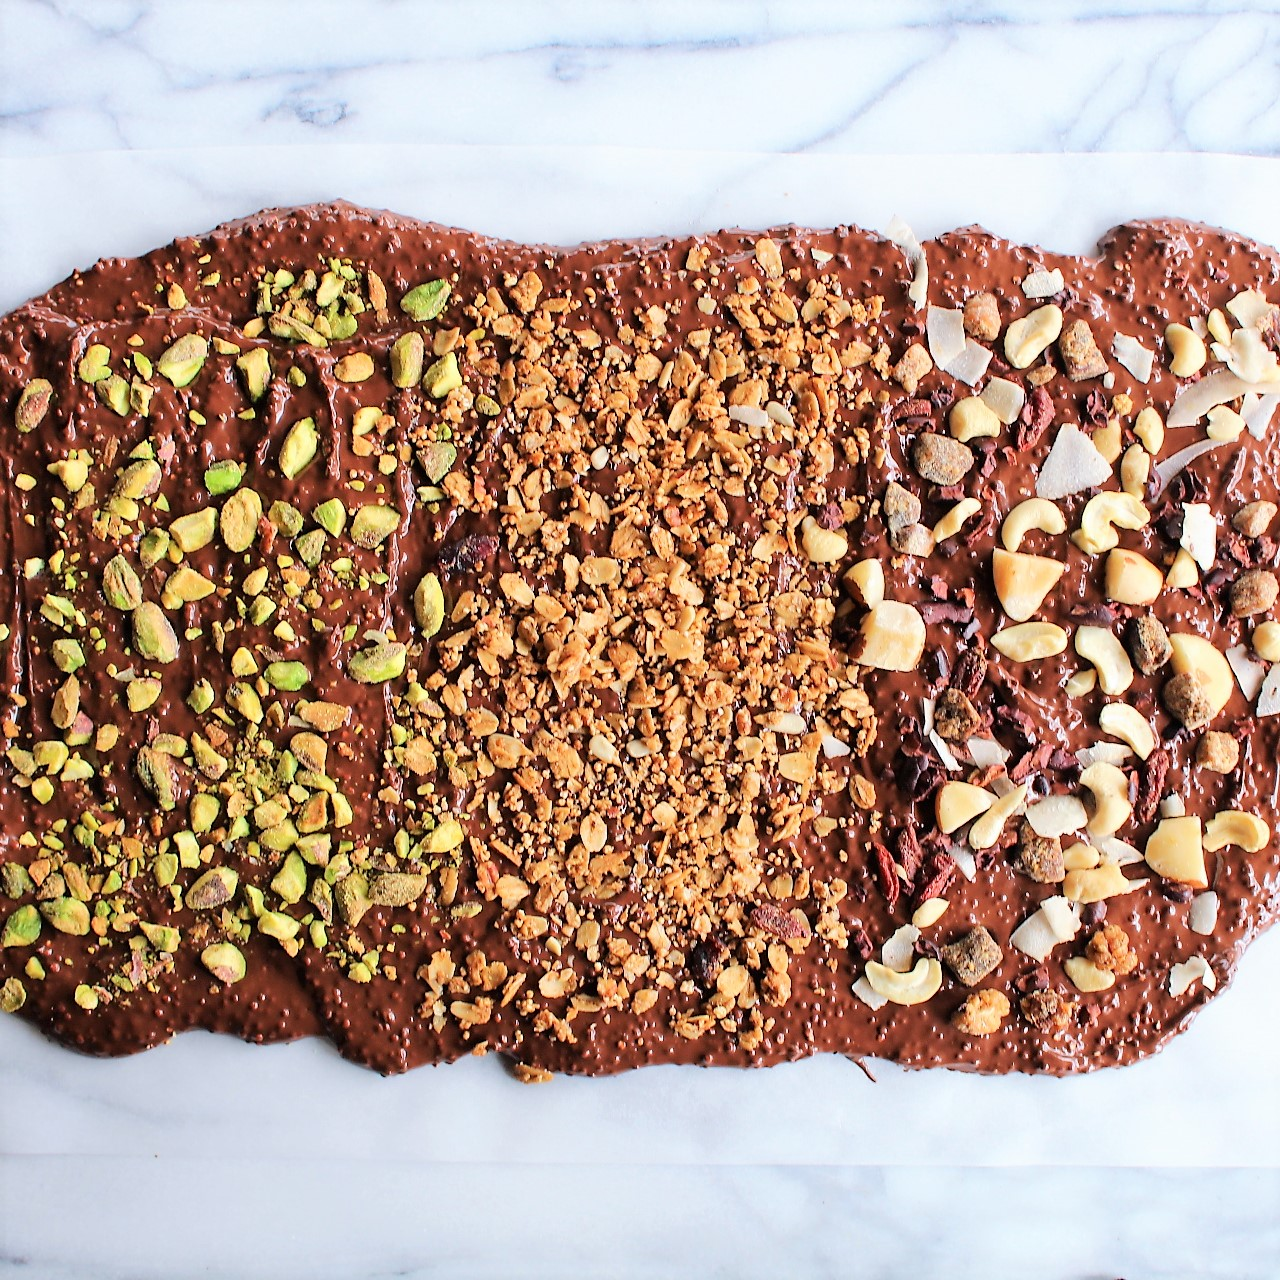 Puffed Quinoa Chocolate Almond Bark